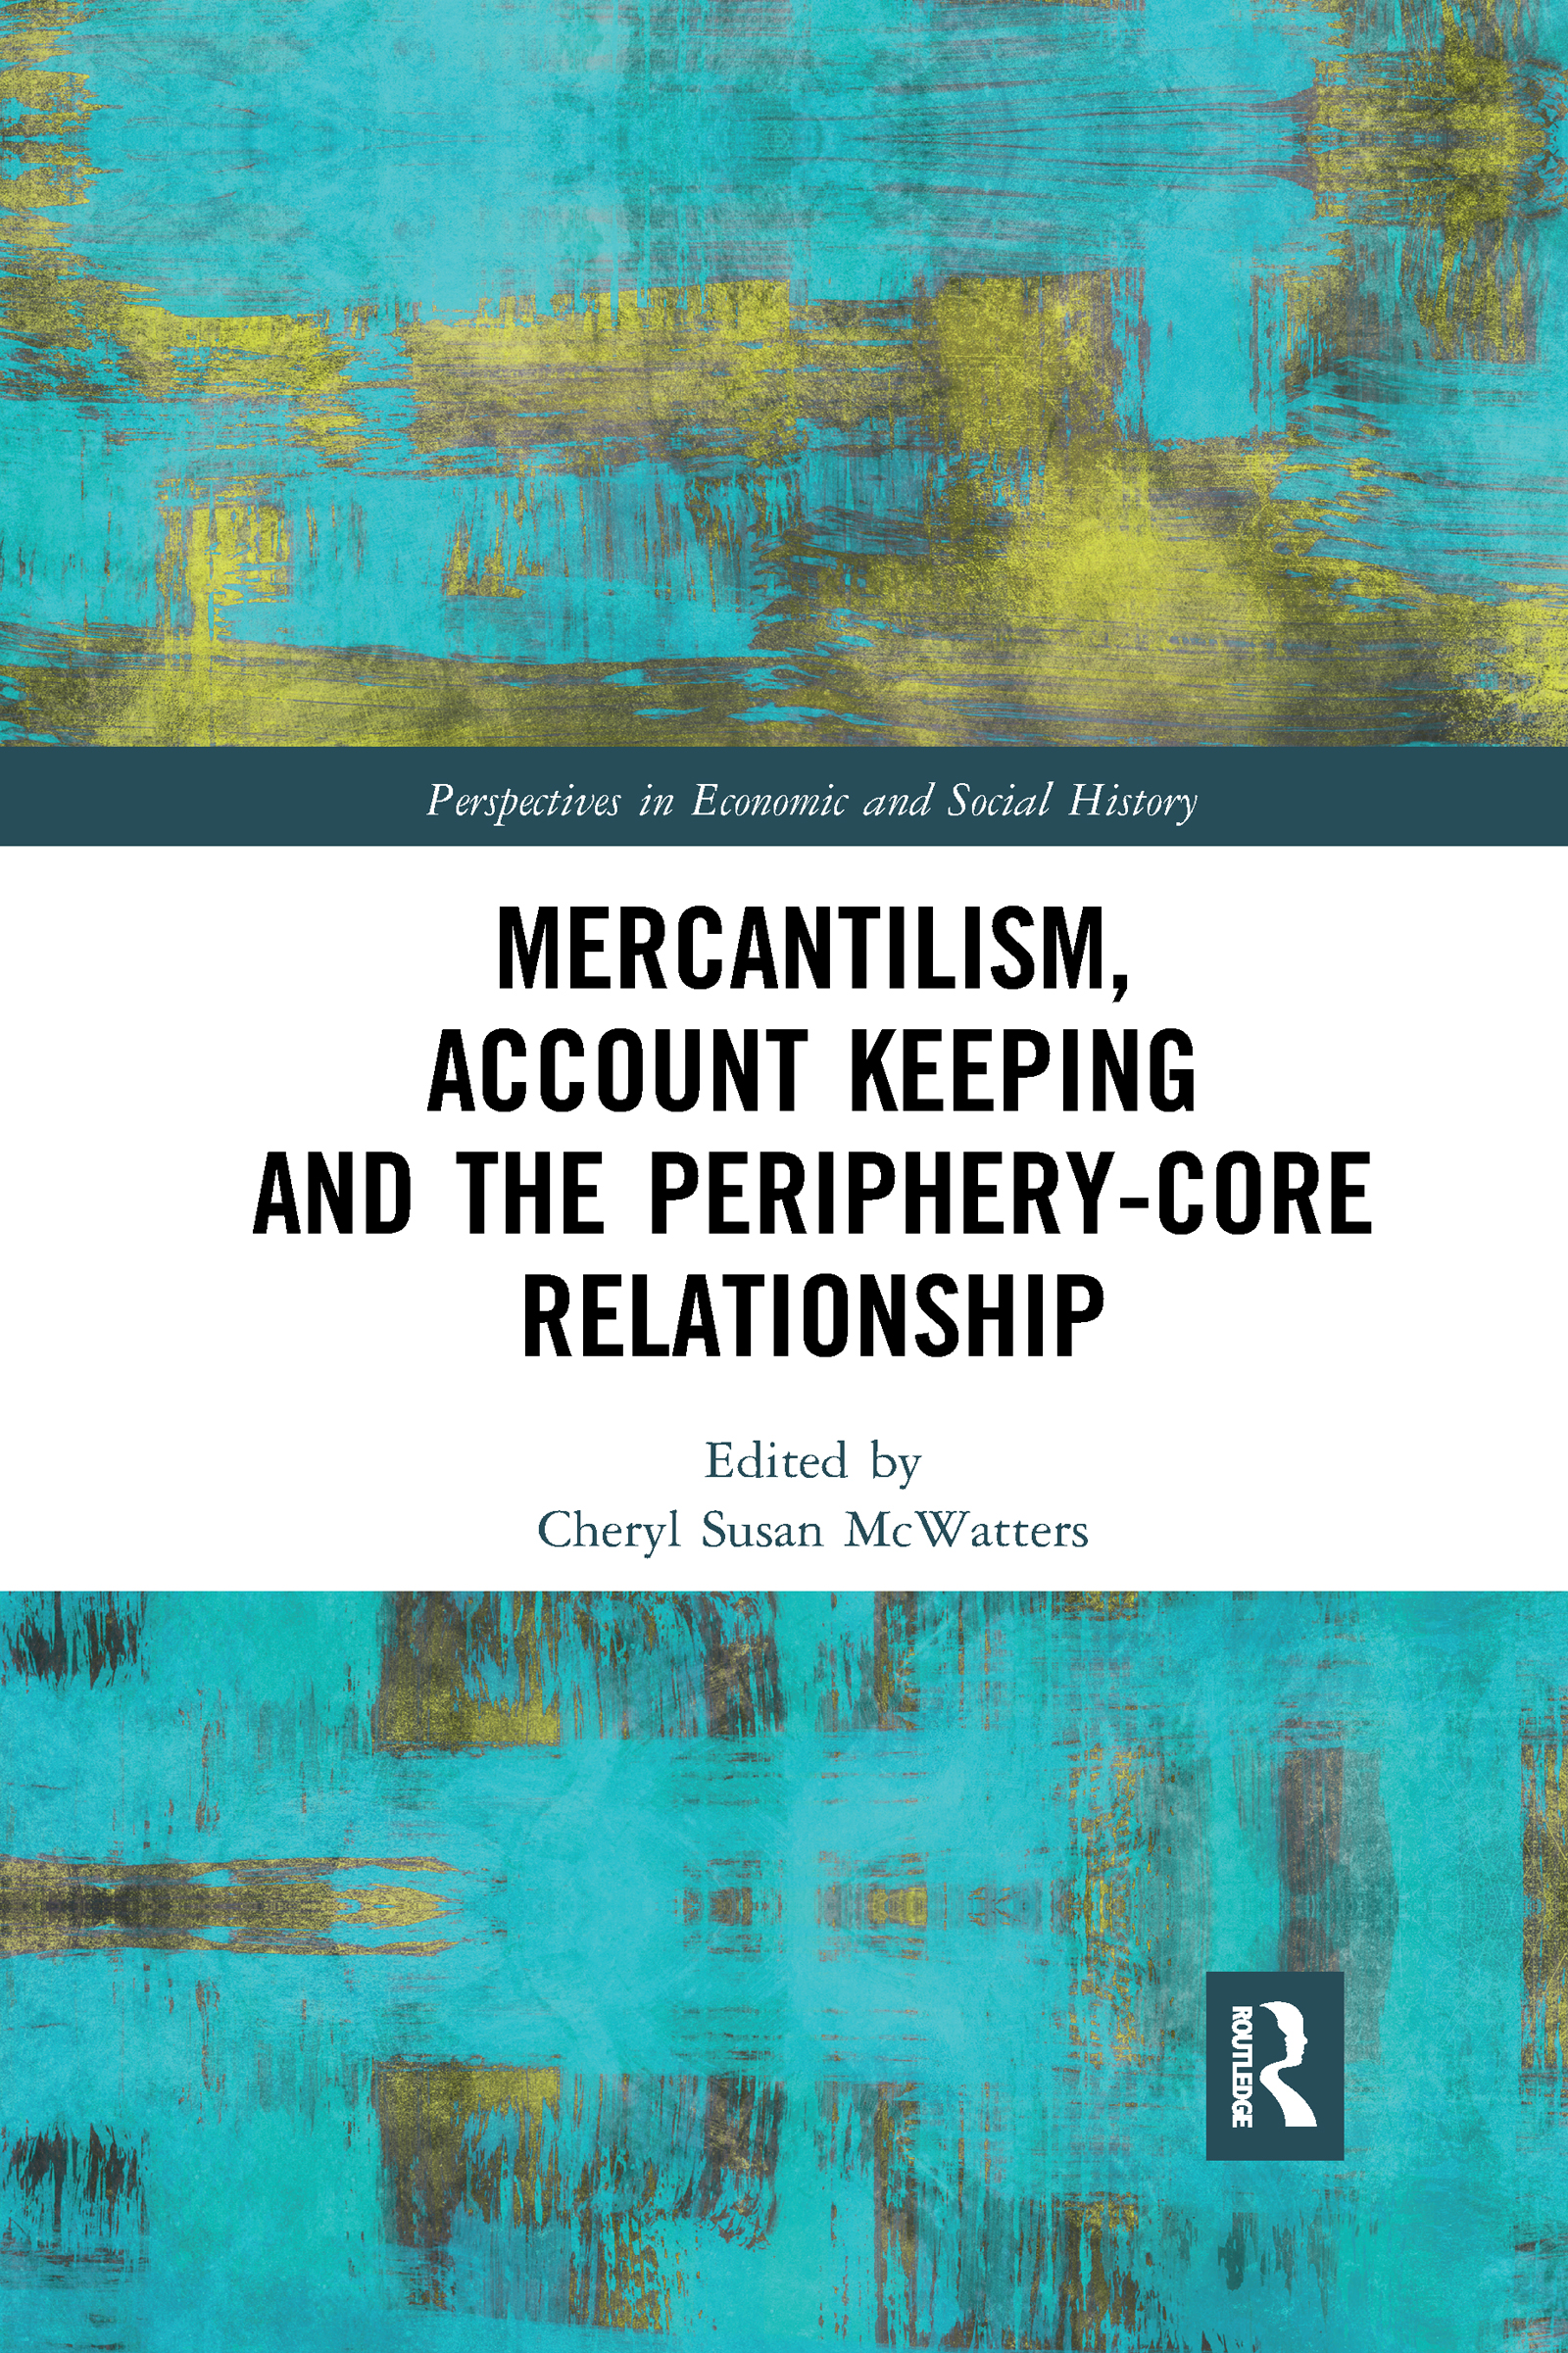 Mercantilism, Account Keeping and the Periphery-Core Relationship